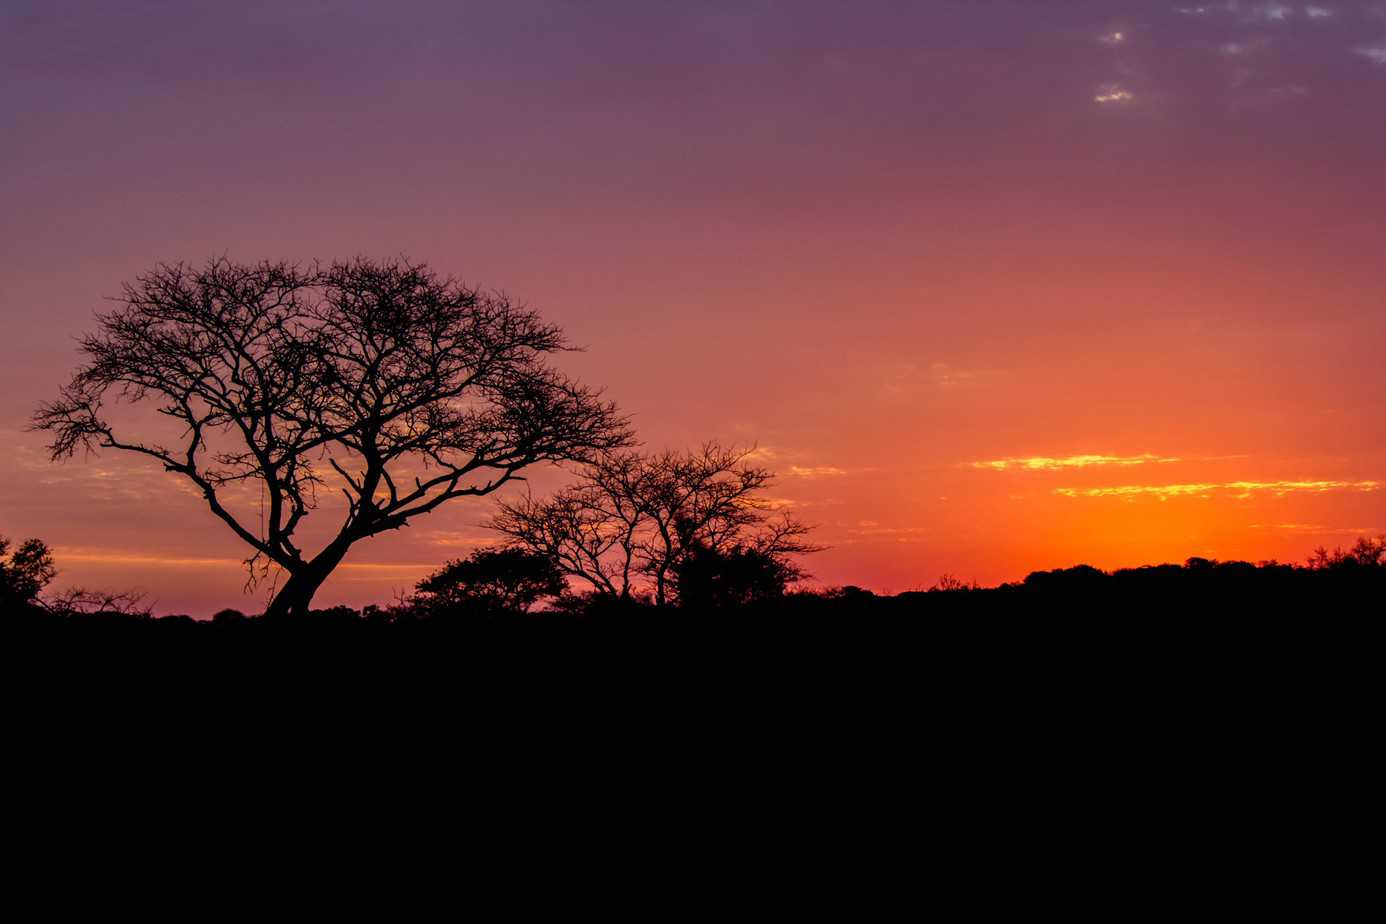 Sunset @ Tembe Elephant Park. Photo: Håvard Rosenlund